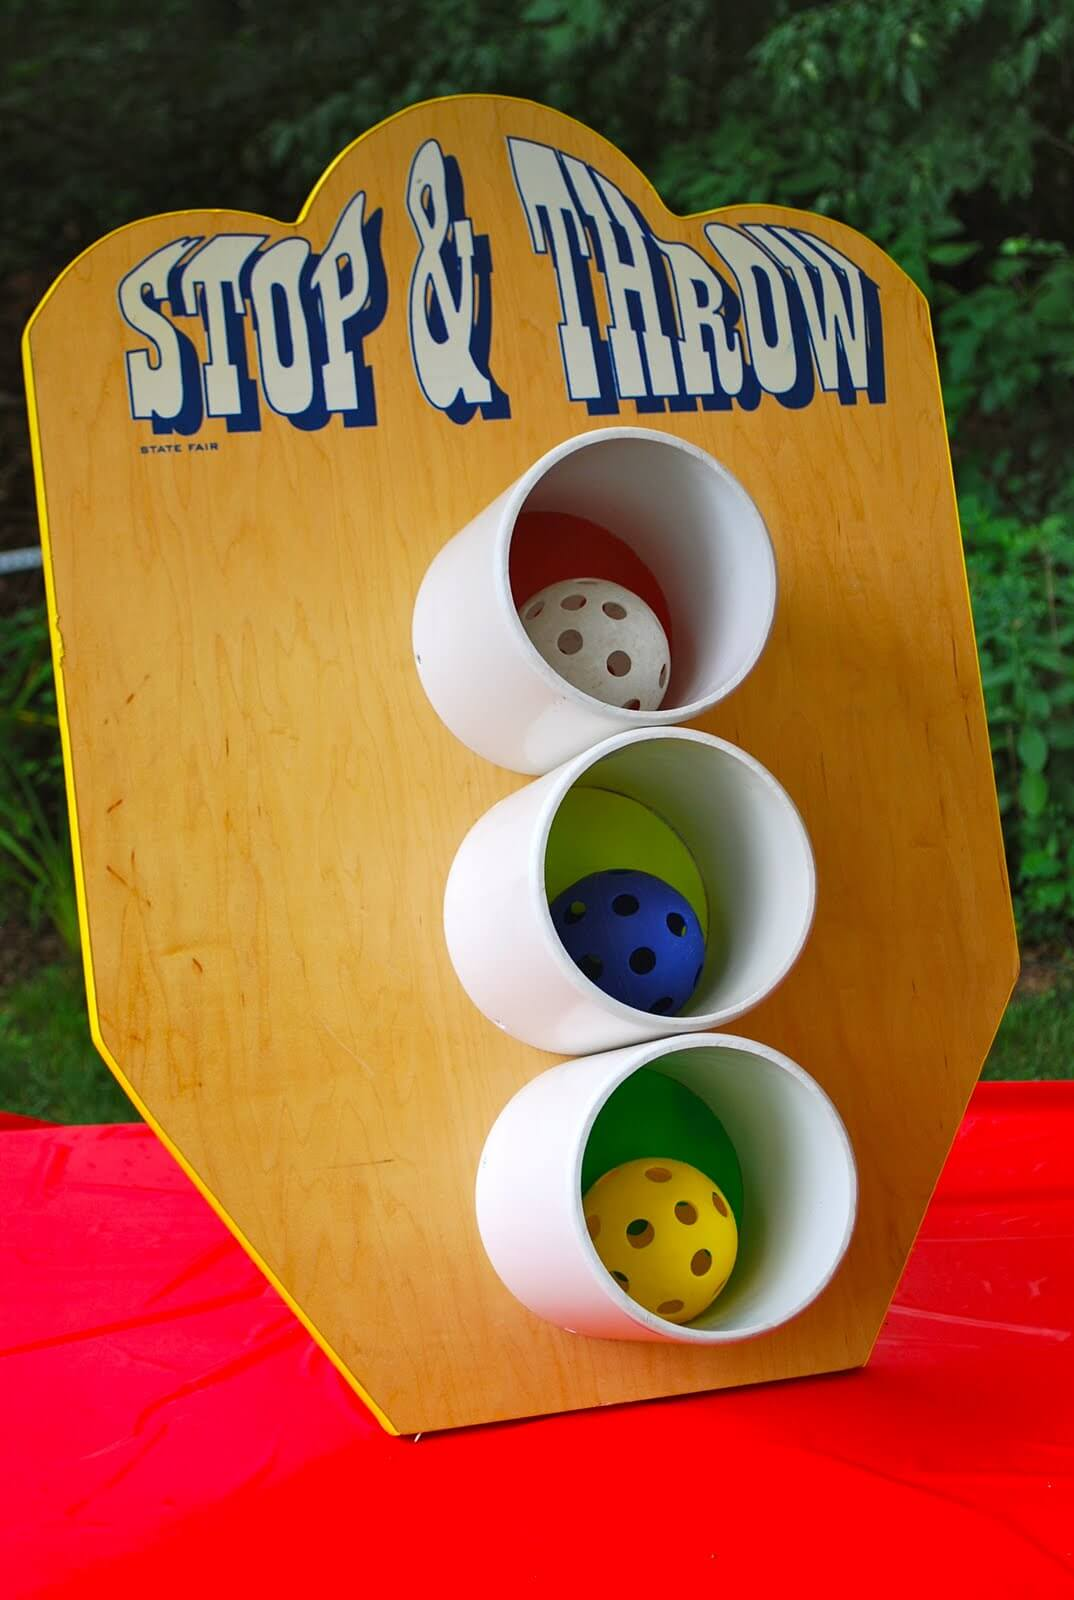 Stop and Throw Skee Ball Carnival Game